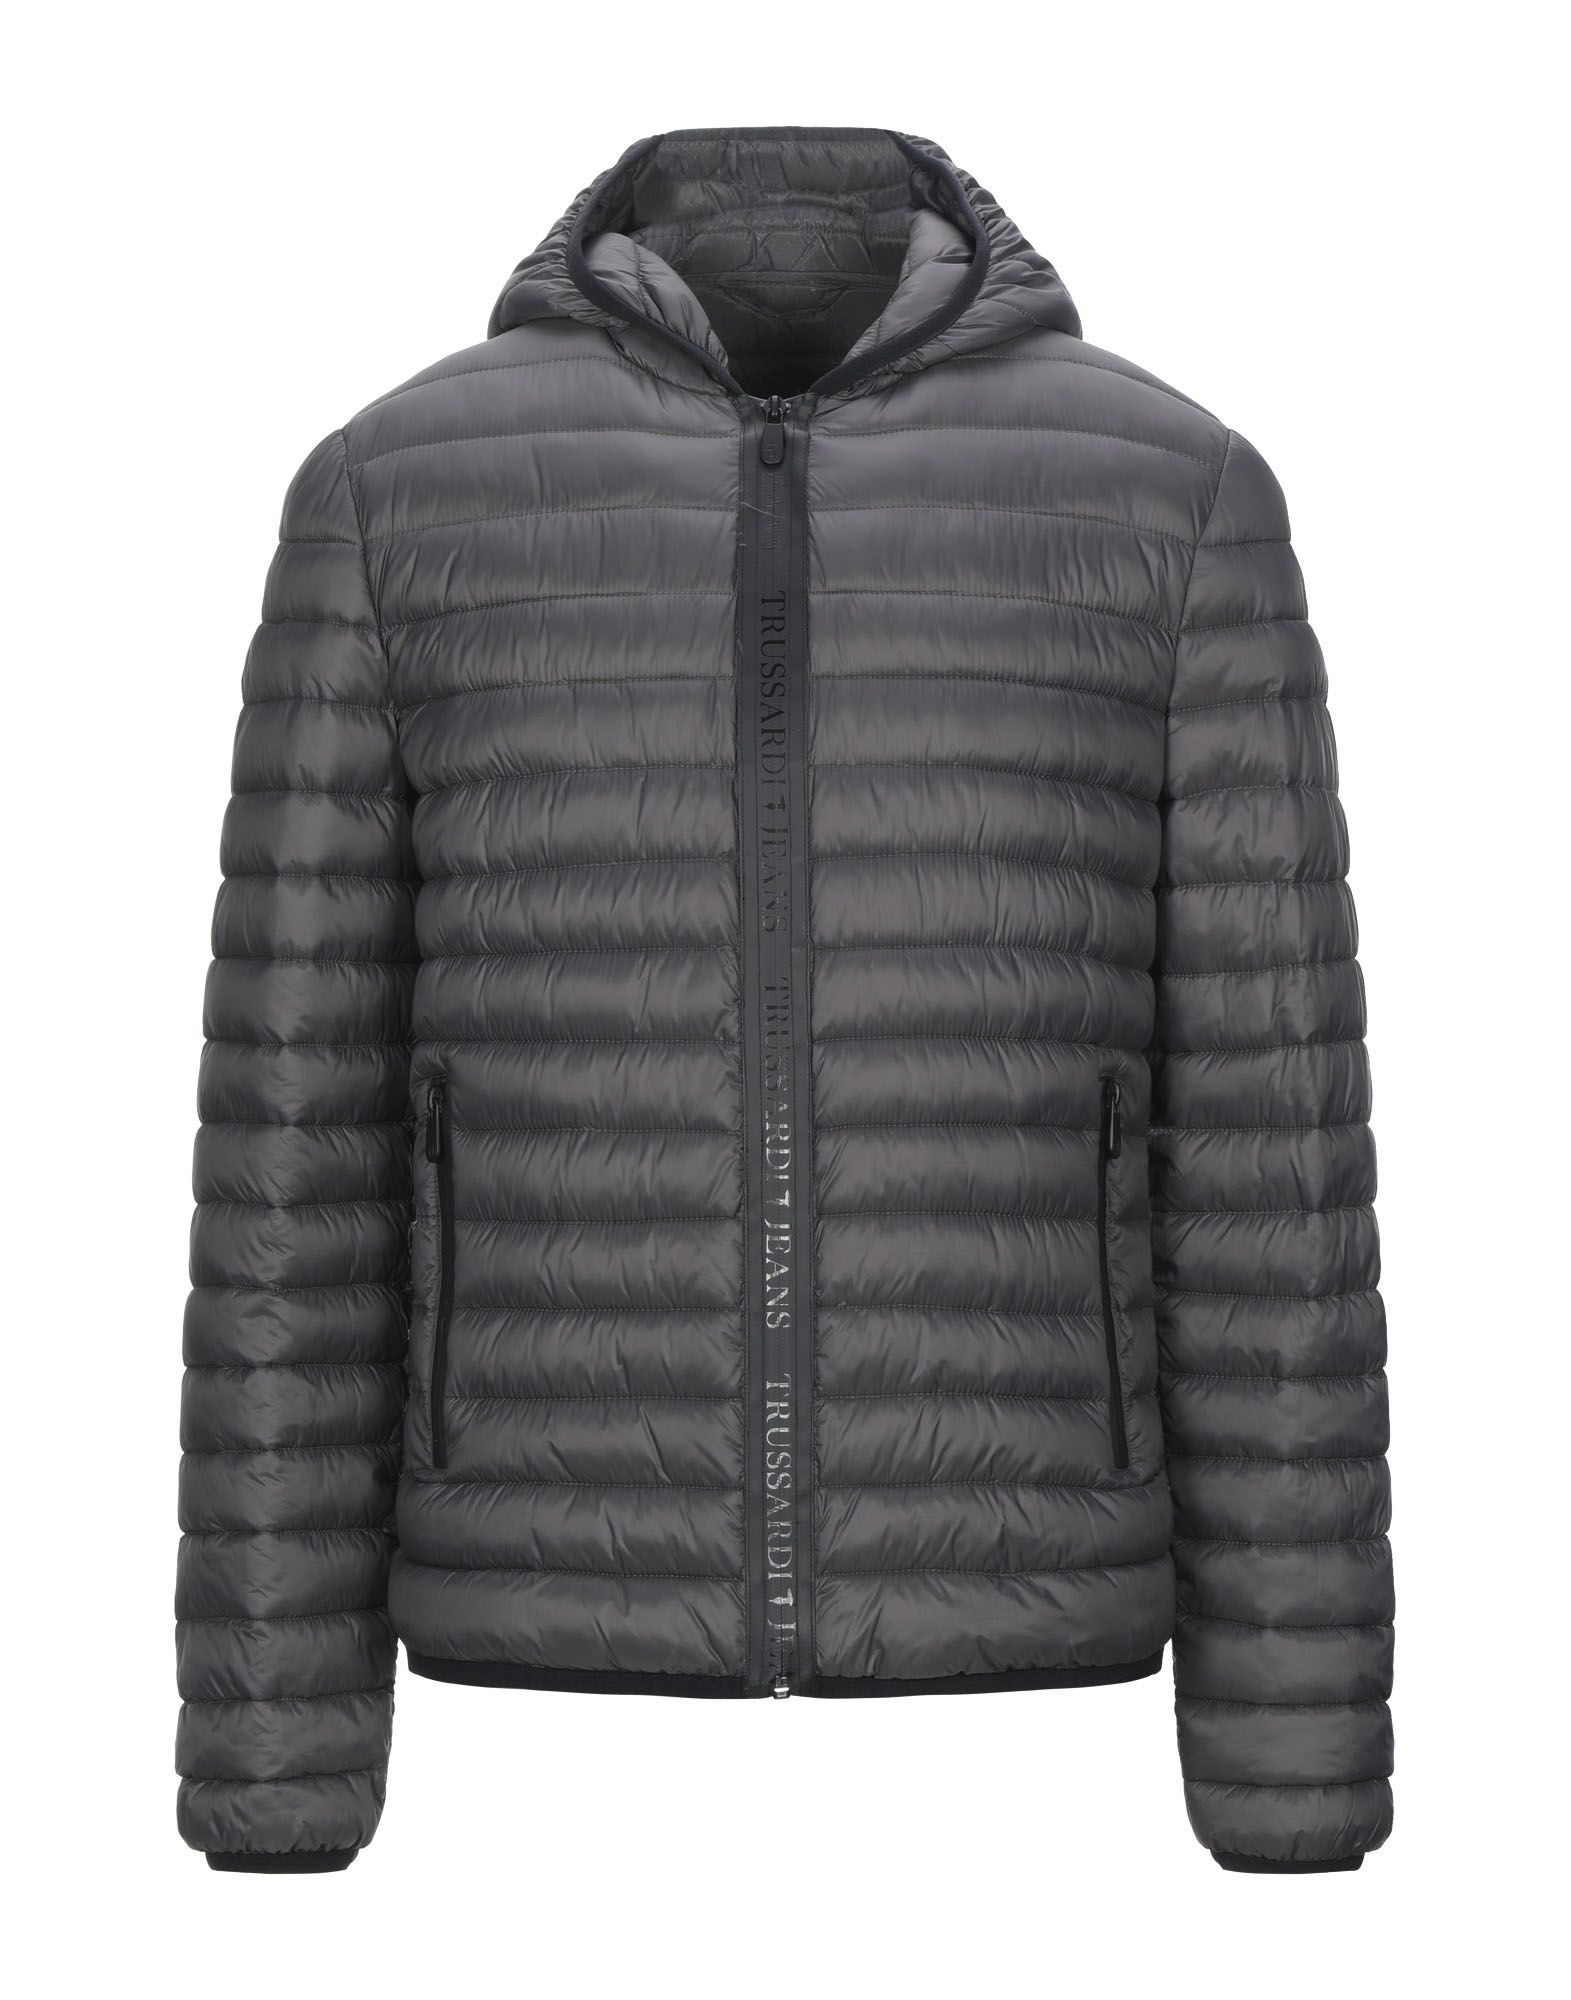 TRUSSARDI JEANS Synthetic Down Jackets - Item 41976329